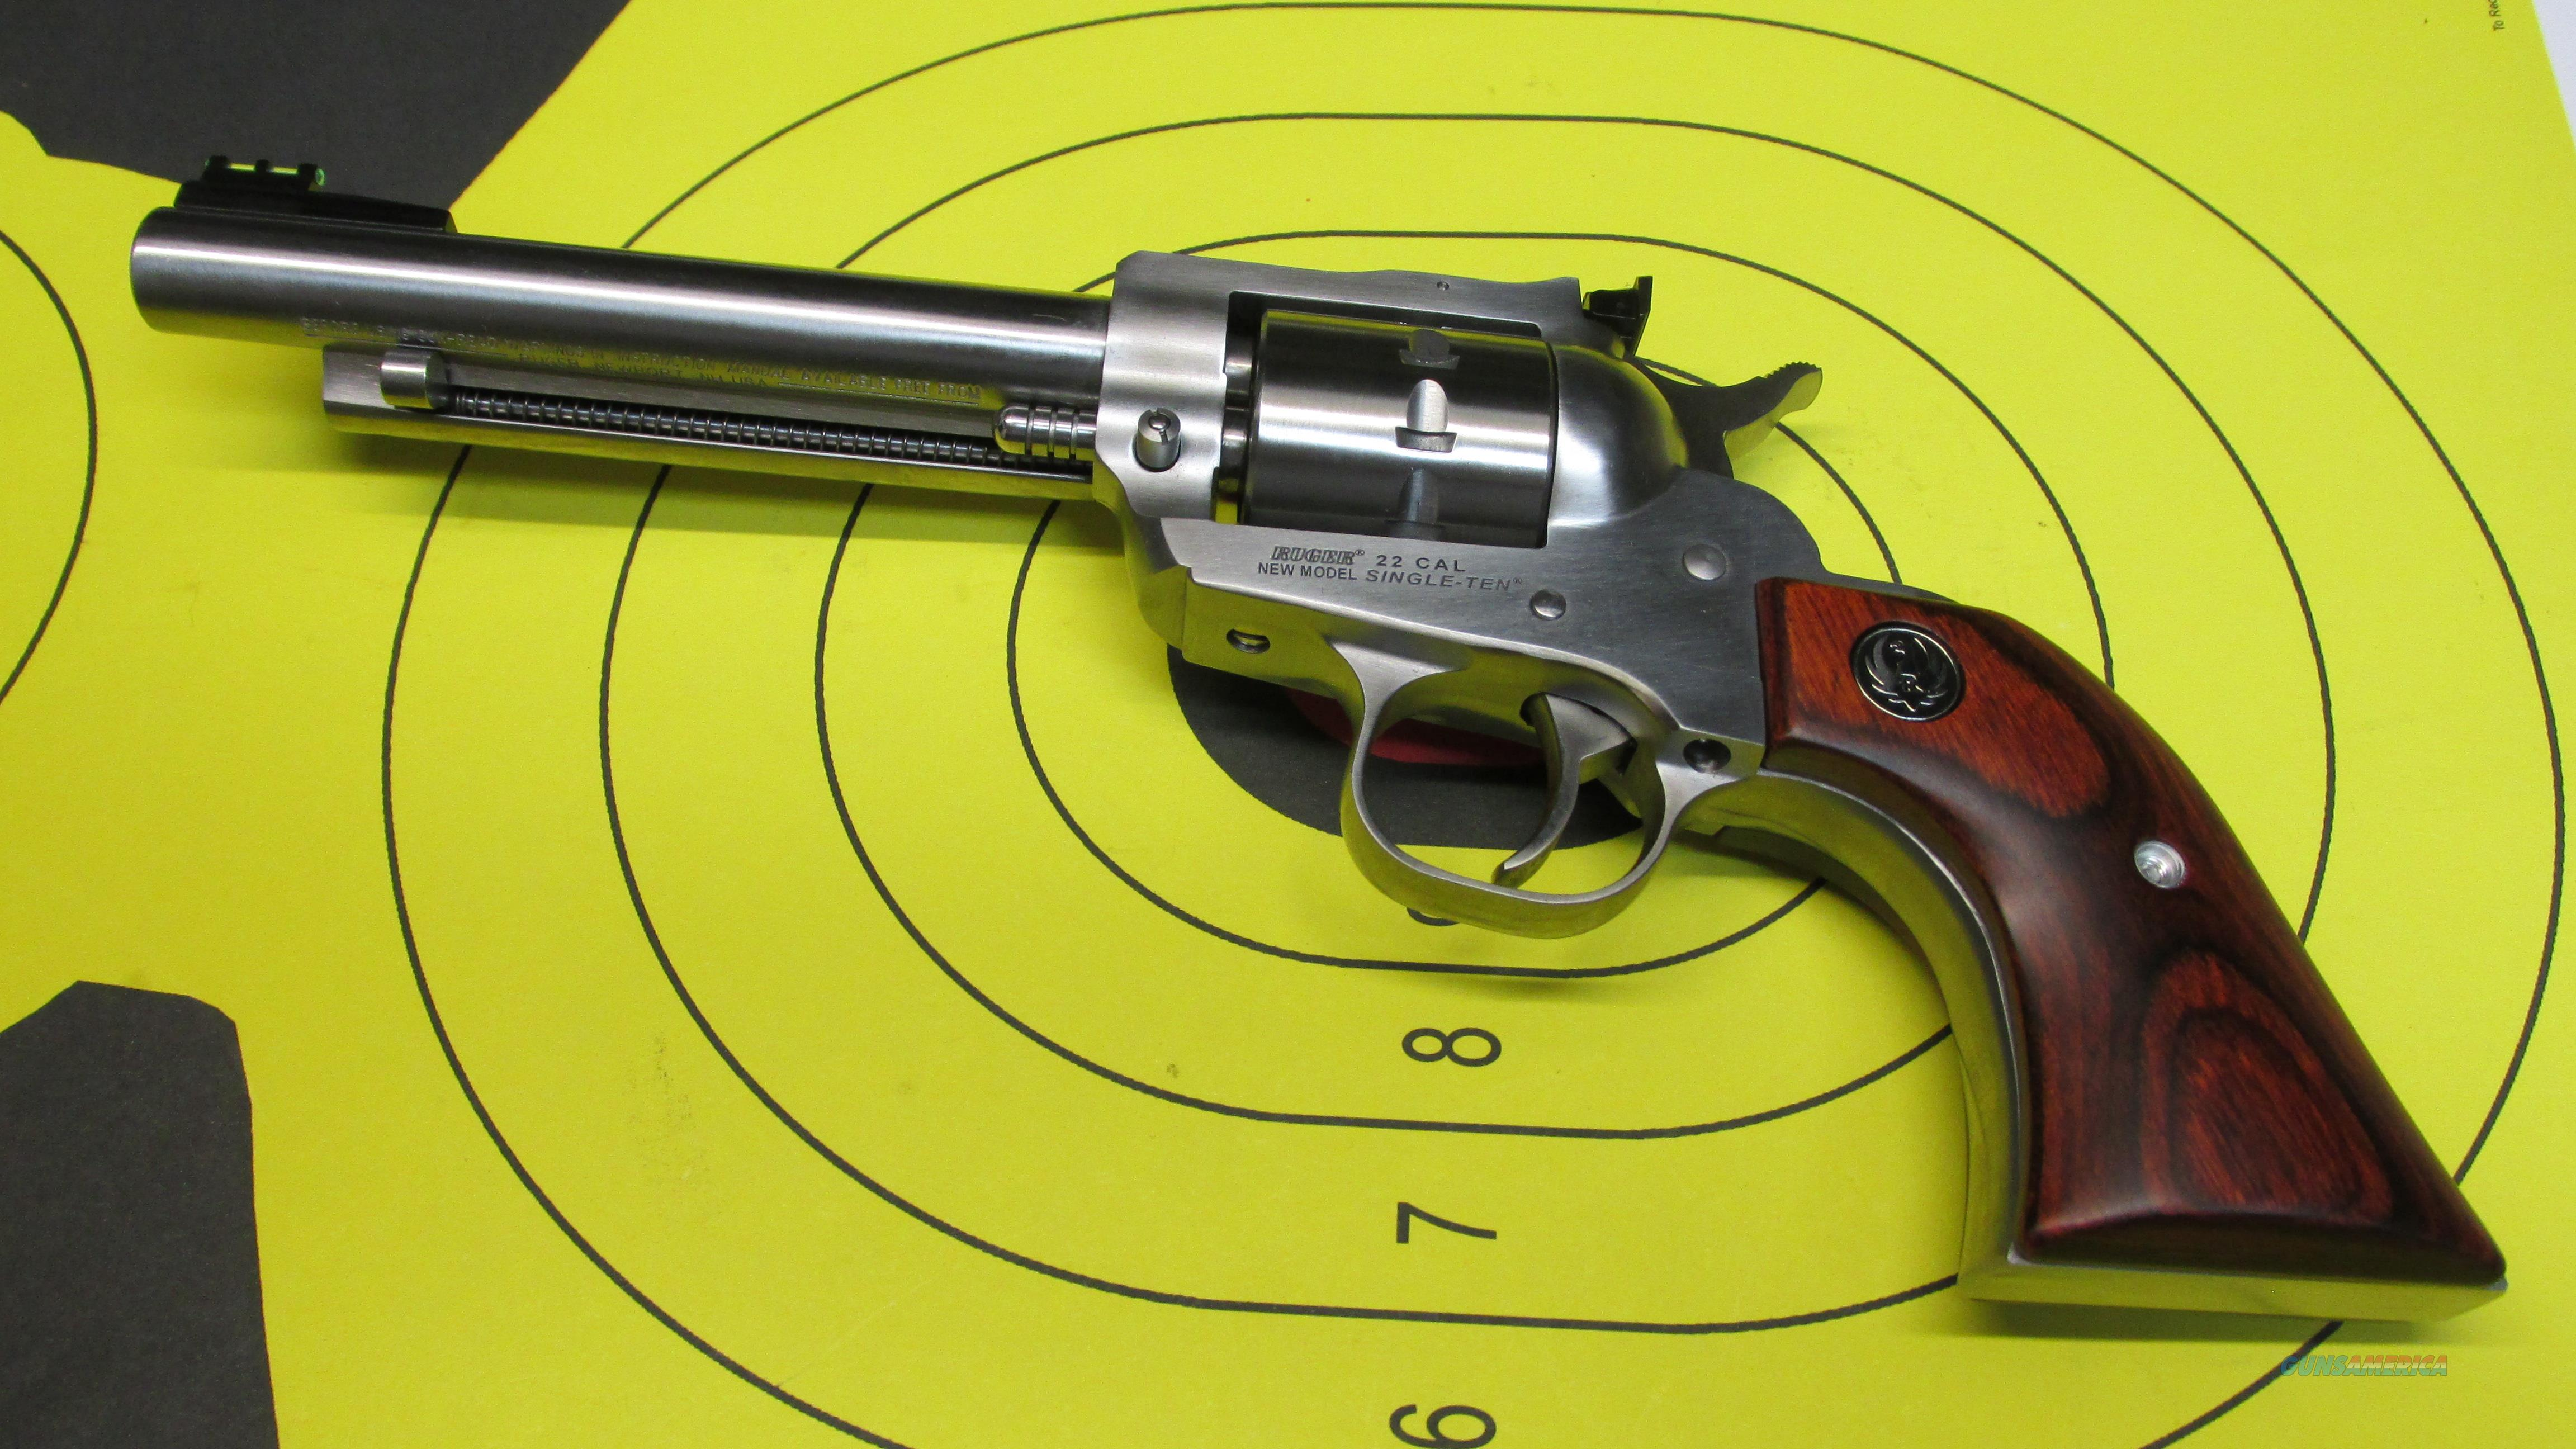 "RUGER SINGLE TEN, 10 SHOT .22LR SINGLE ACTION REVOLVER, 5.5"" BARREL  Guns > Pistols > Ruger Single Action Revolvers > Single Six Type"